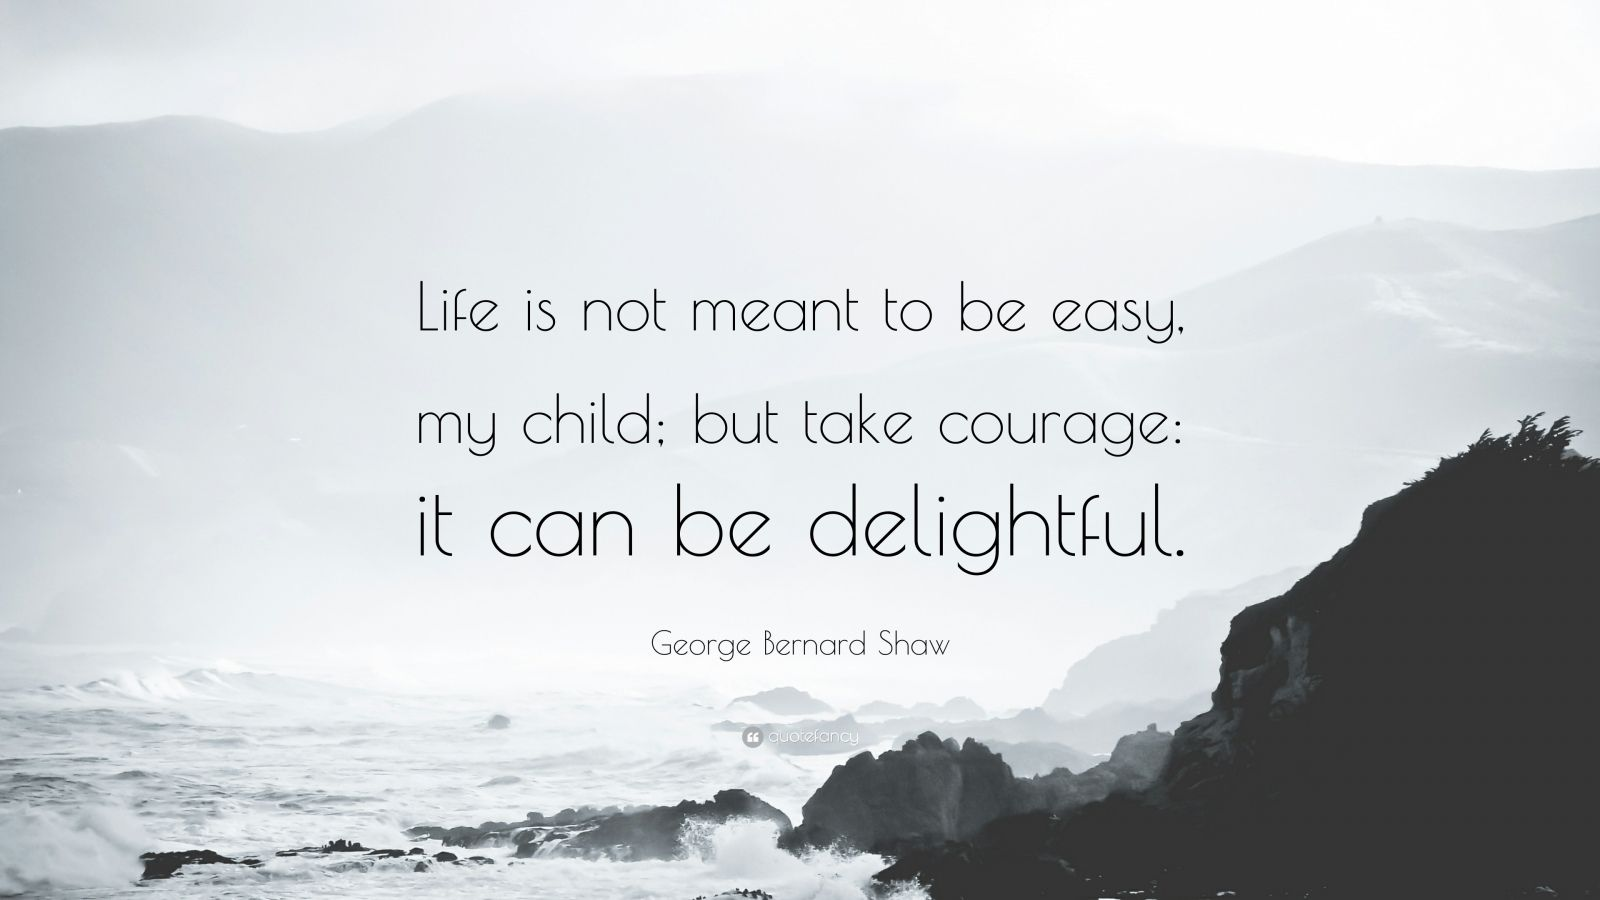 """George Bernard Shaw Quote: """"Life is not meant to be easy, my child; but take courage: it can be delightful."""""""